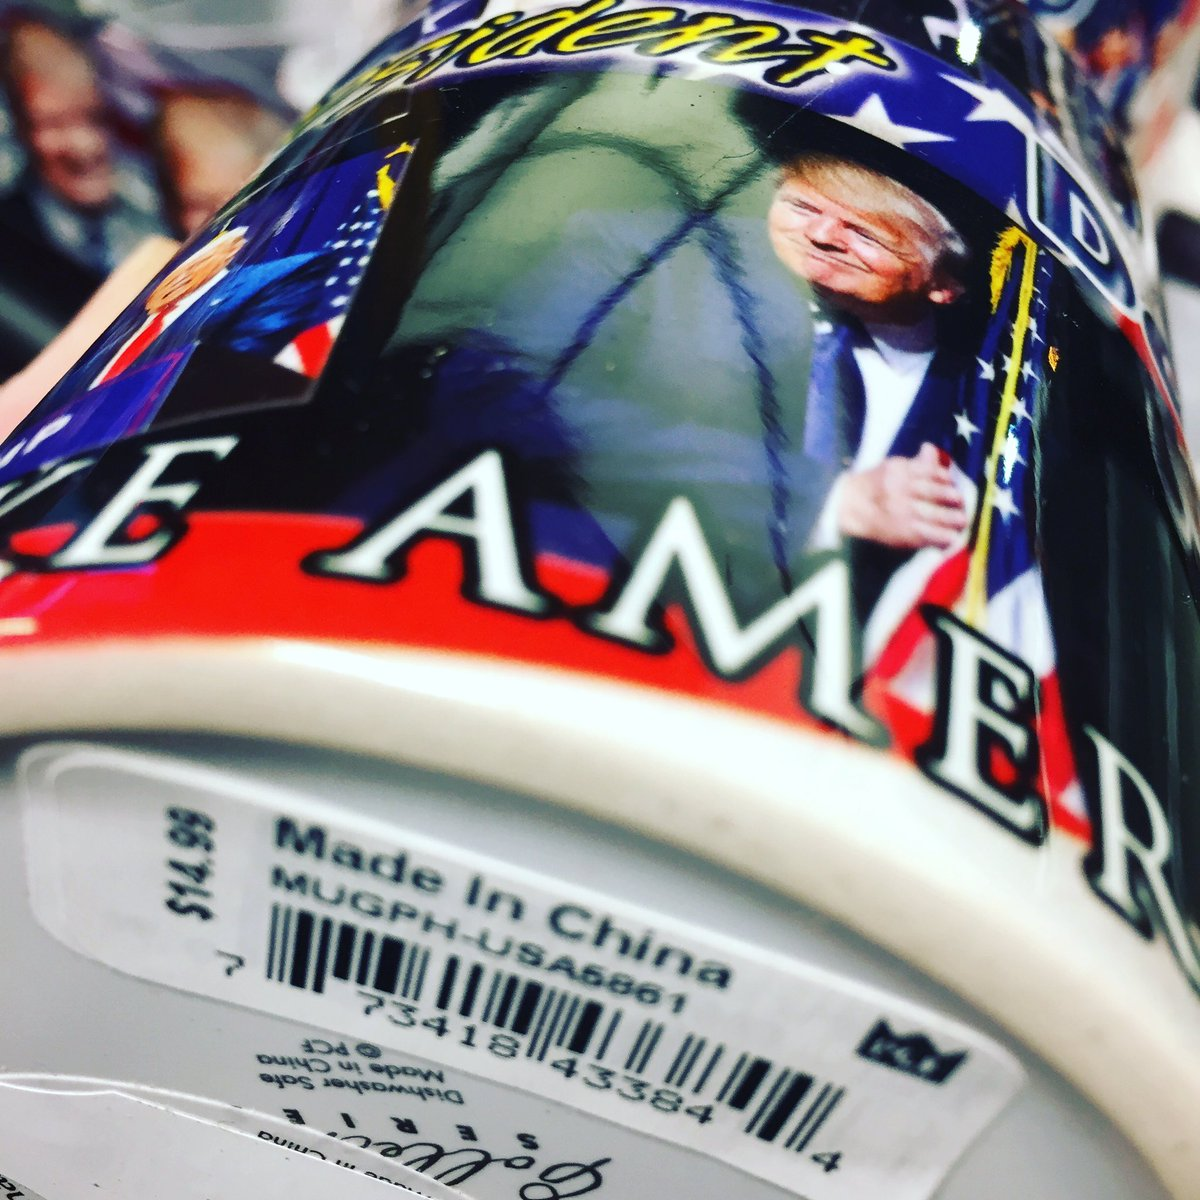 New Donald Trump mugs available at Washington DC airport.  Made in China. https://t.co/SdJy8c4ycQ